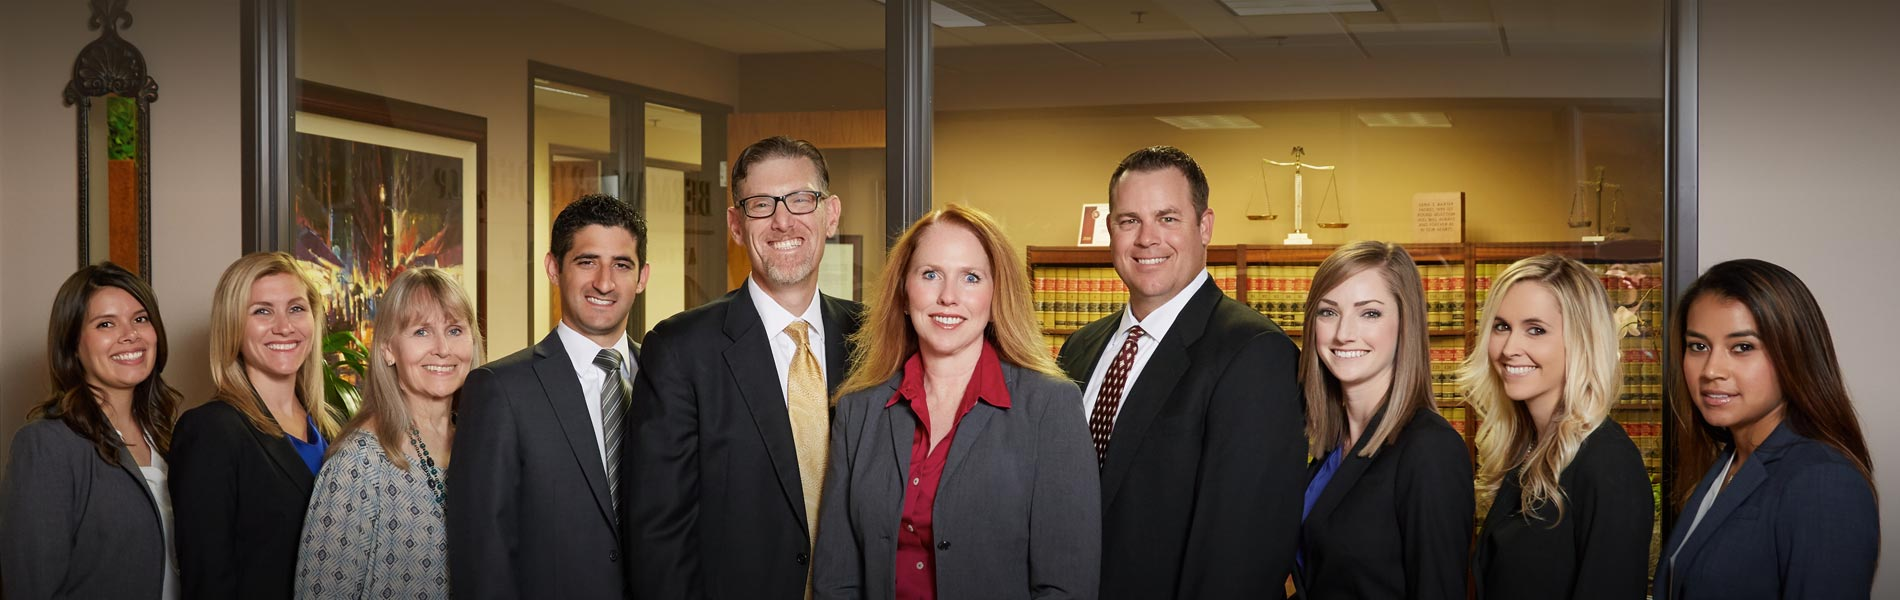 Berman & Riedel, LLP - Attorneys at Law